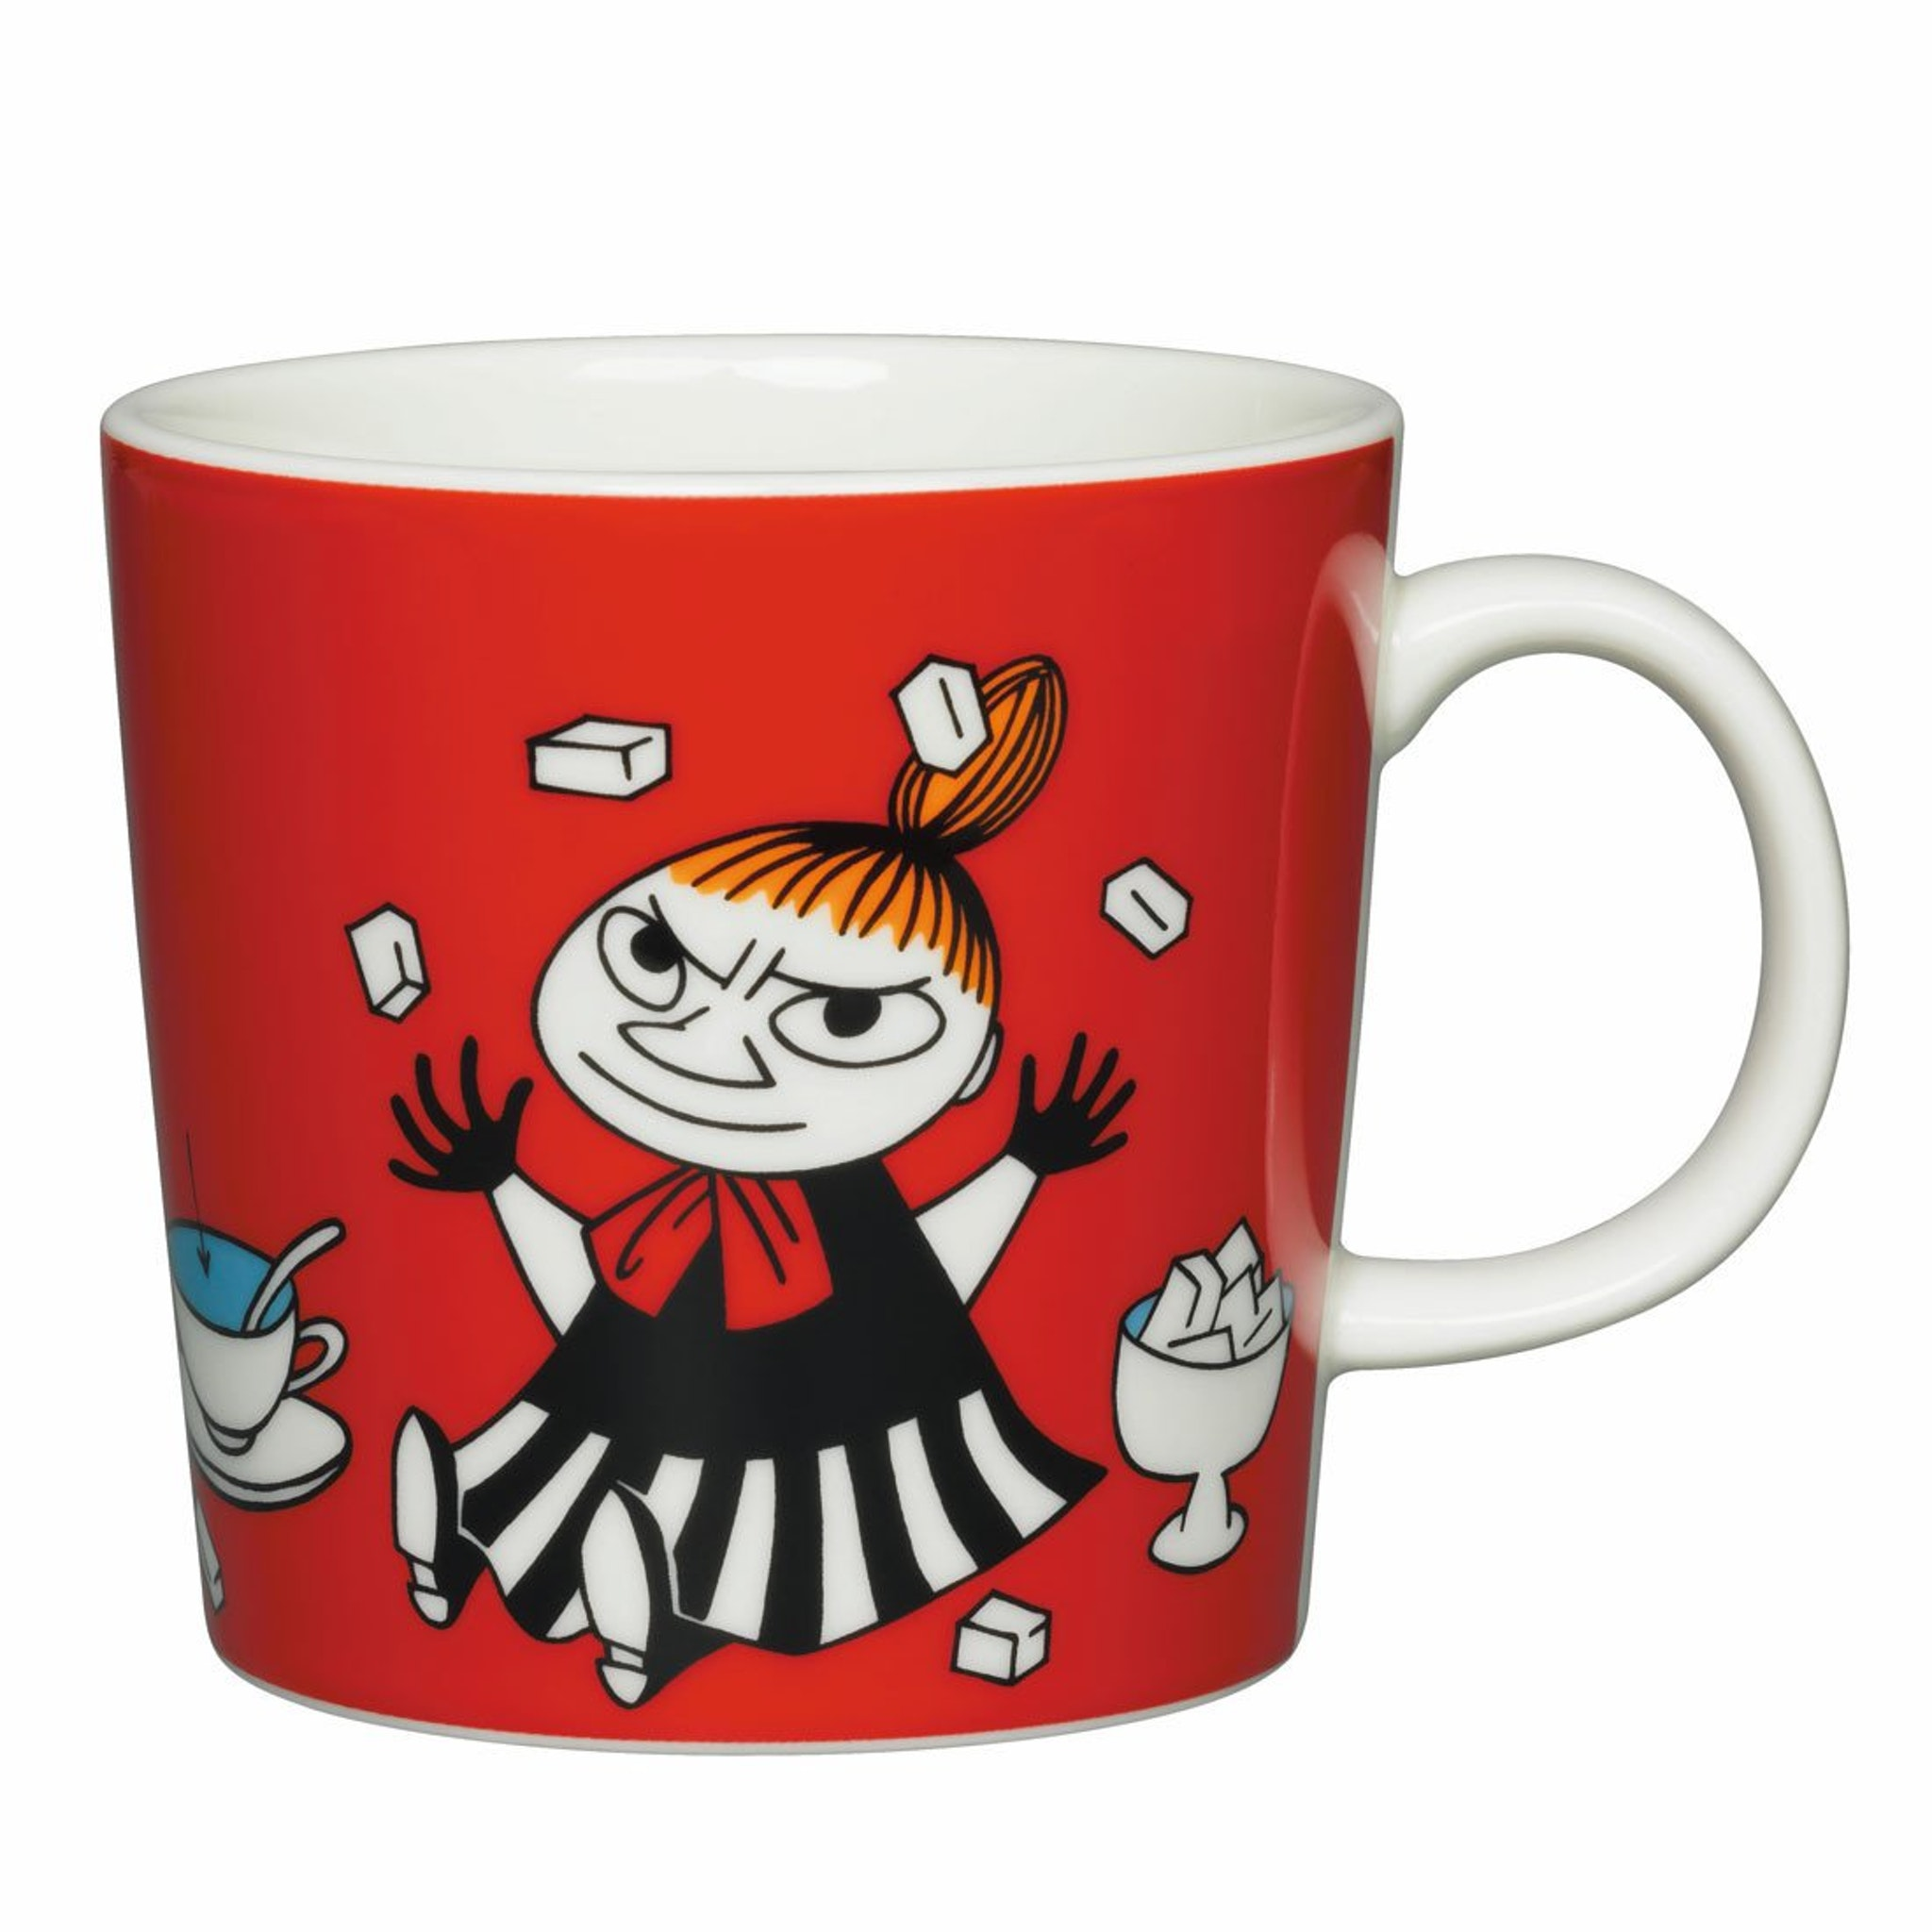 Moomin Mugs by Tove Jansson